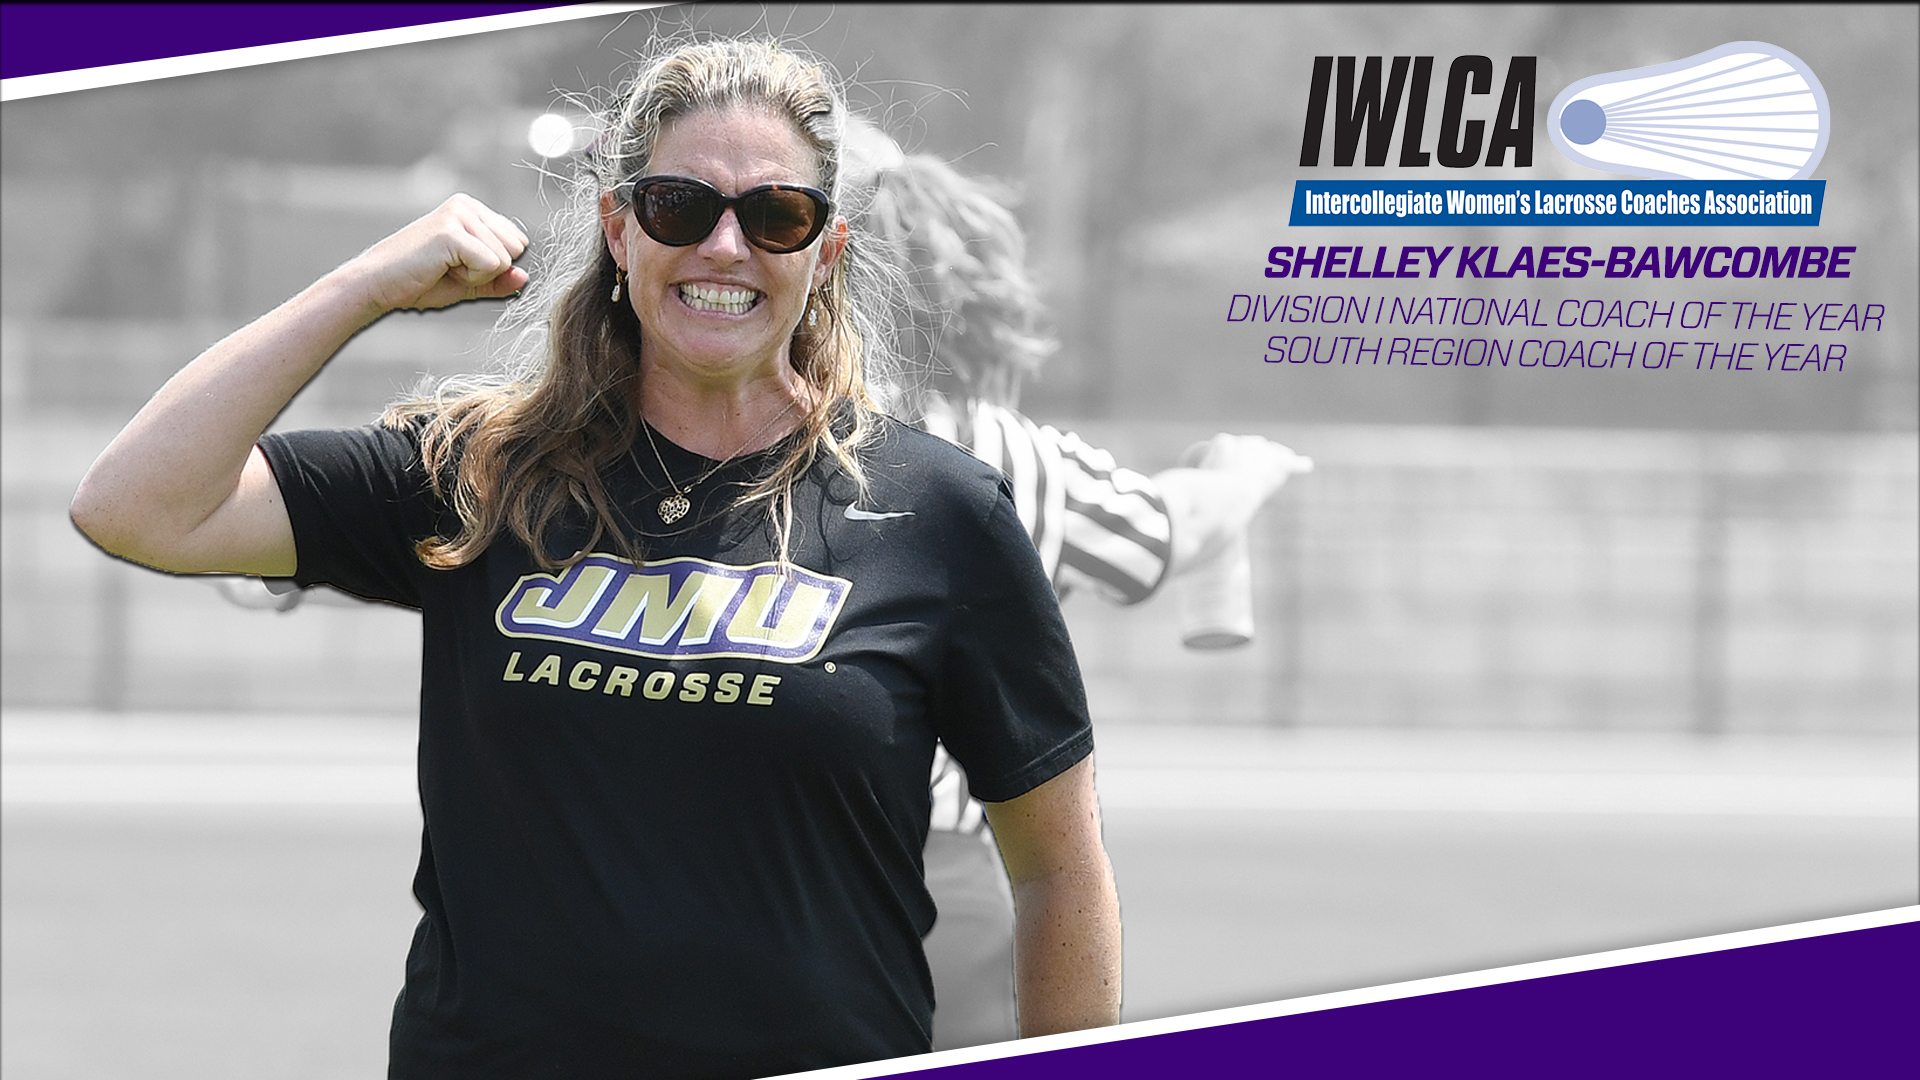 Women's Lacrosse: Klaes-Bawcombe Voted IWLCA National Coach of the Year